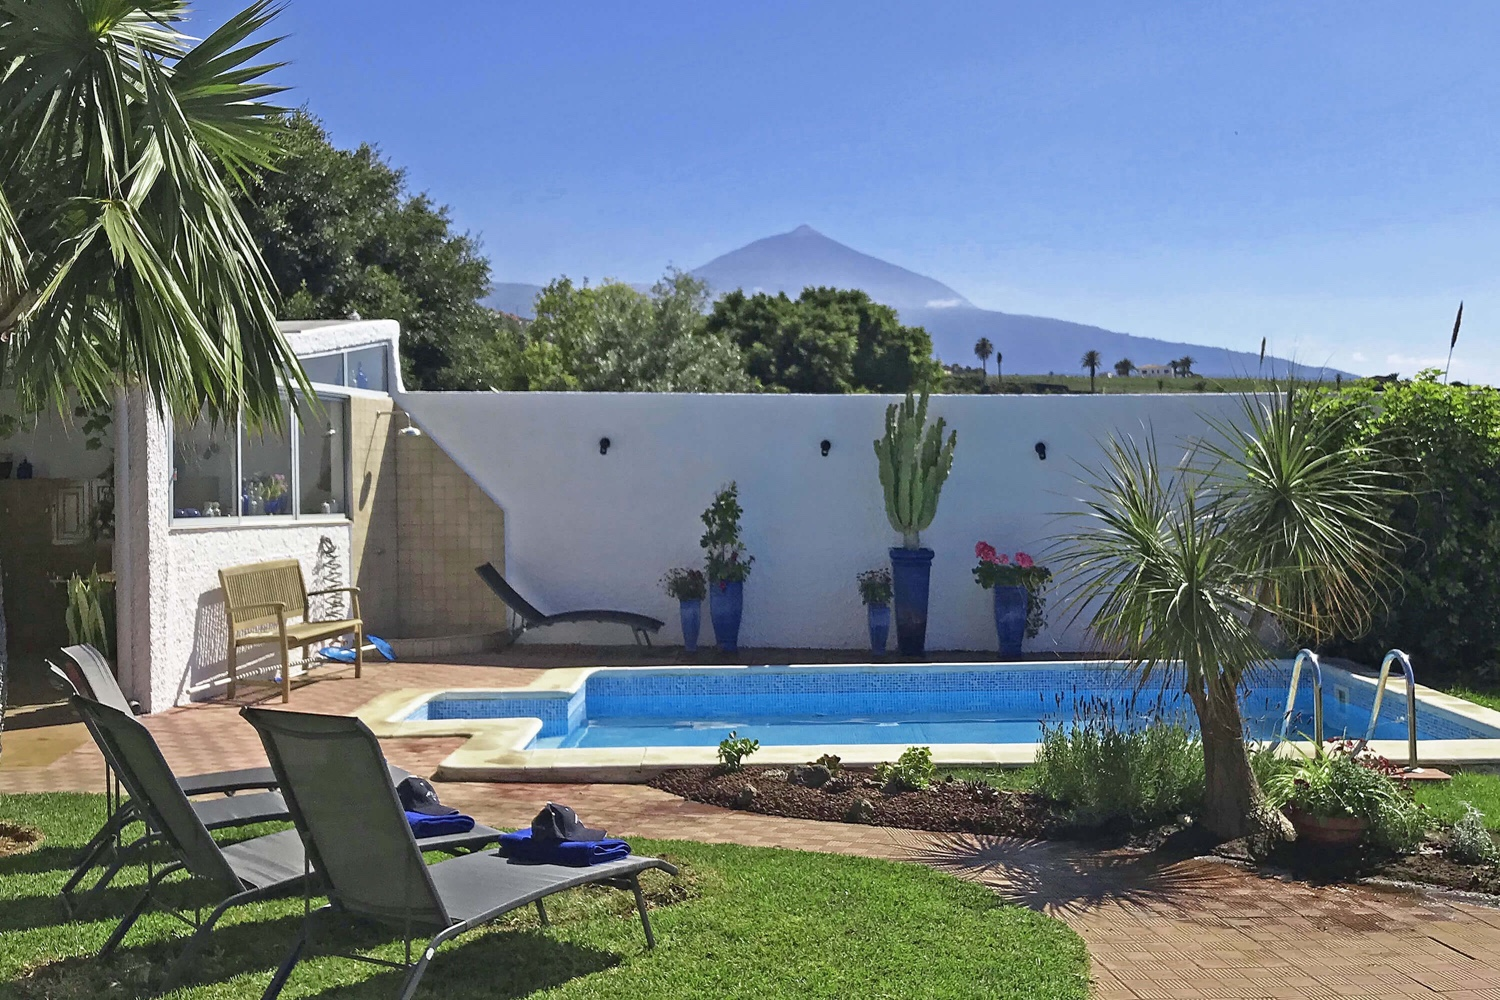 Modern and comfortably furnished holiday villa with 3 bedrooms, private pool and beautiful outdoor area with pavilion to enjoy the fantastic view of the sea and the mountains